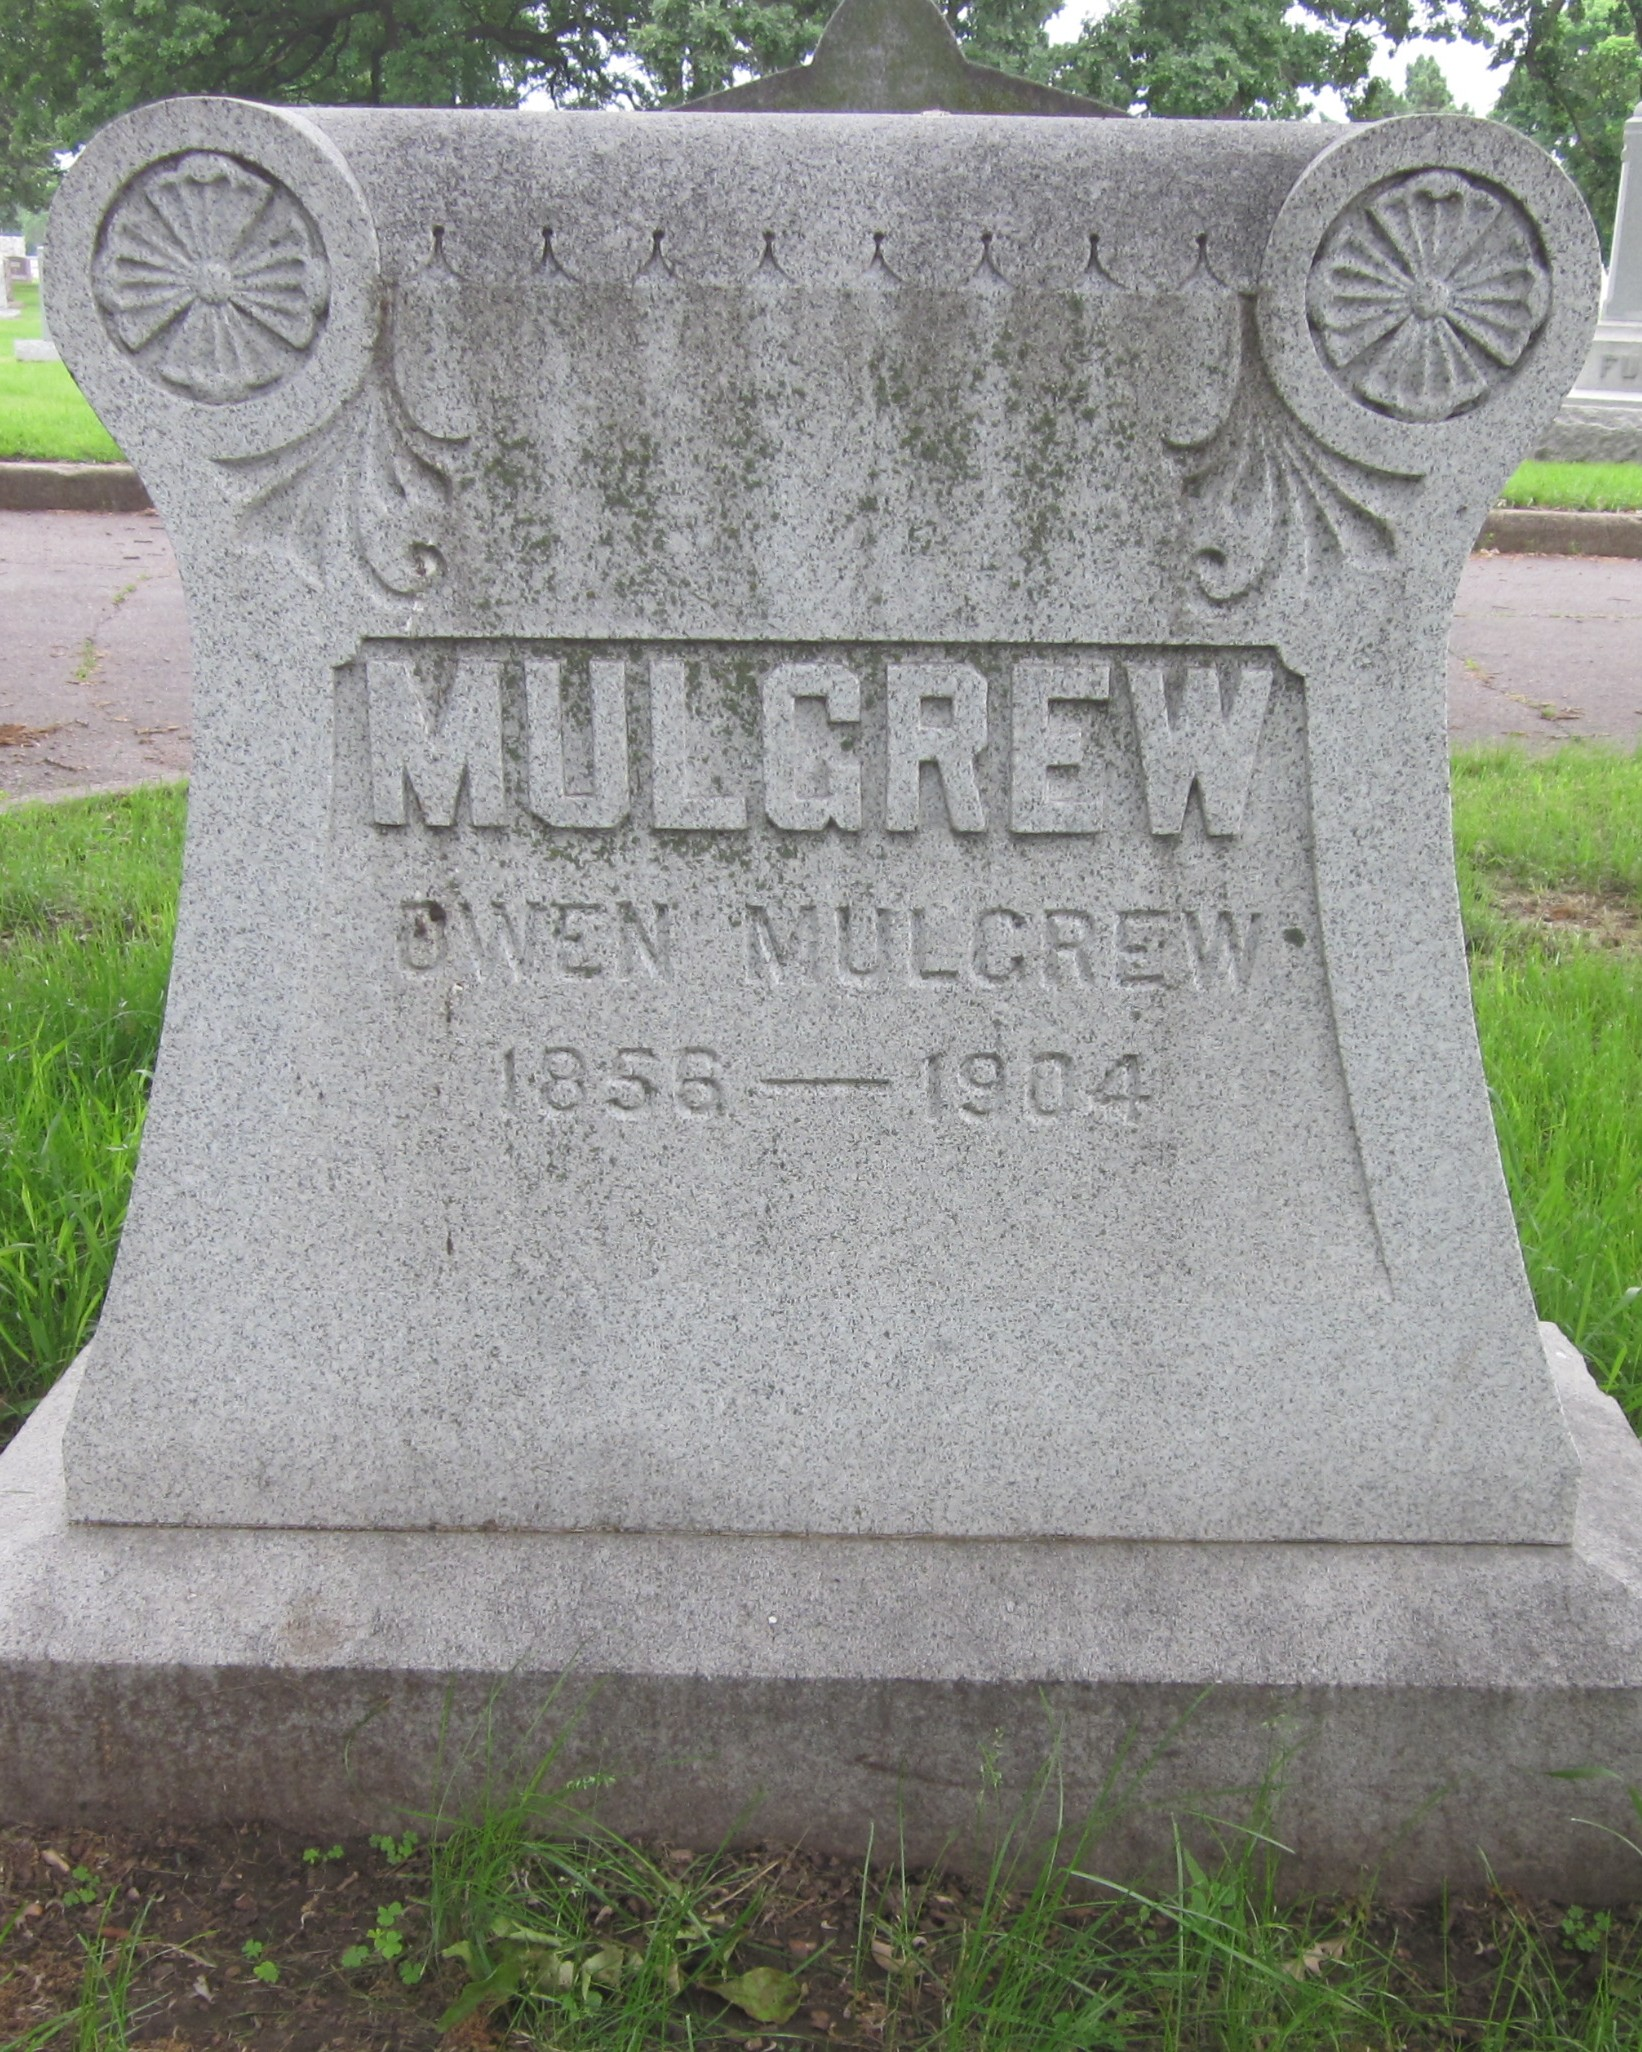 Special Officer Owen Mulgrew | Great Northern Railway Police Department, Railroad Police